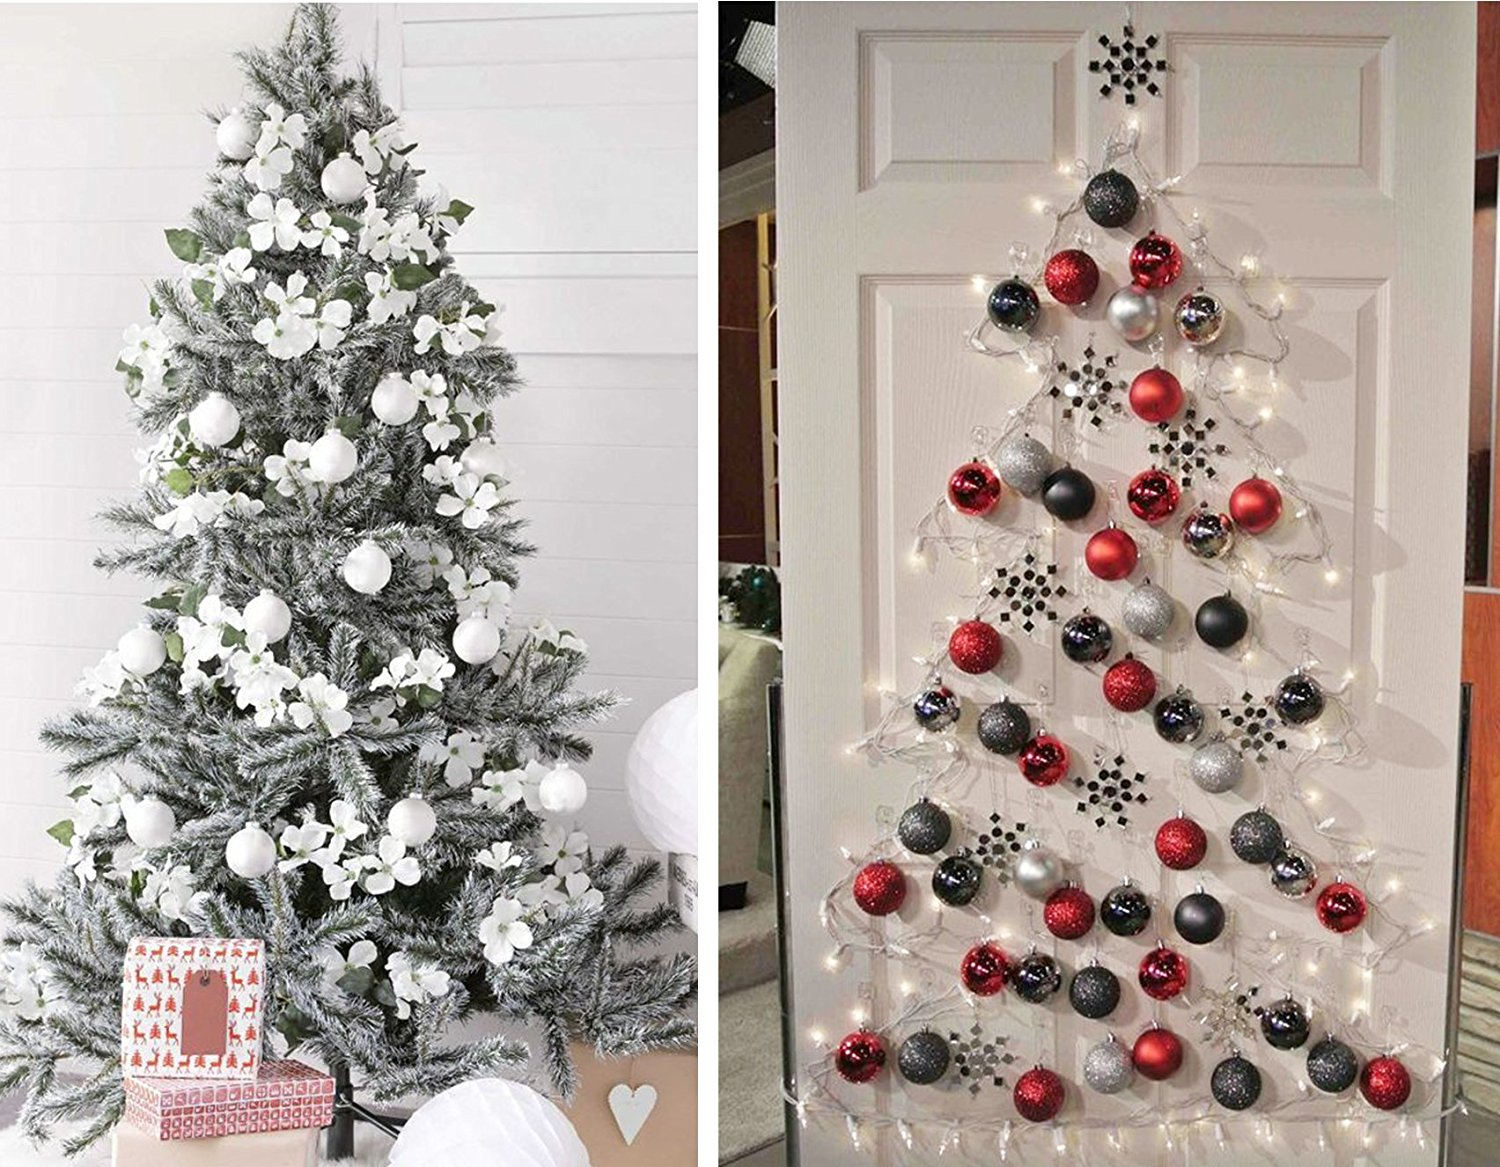 5 KI Store 24ct Christmas Ball Ornaments Shatterproof Christmas Decorations Tree Balls Small for Holiday Wedding Party Decoration